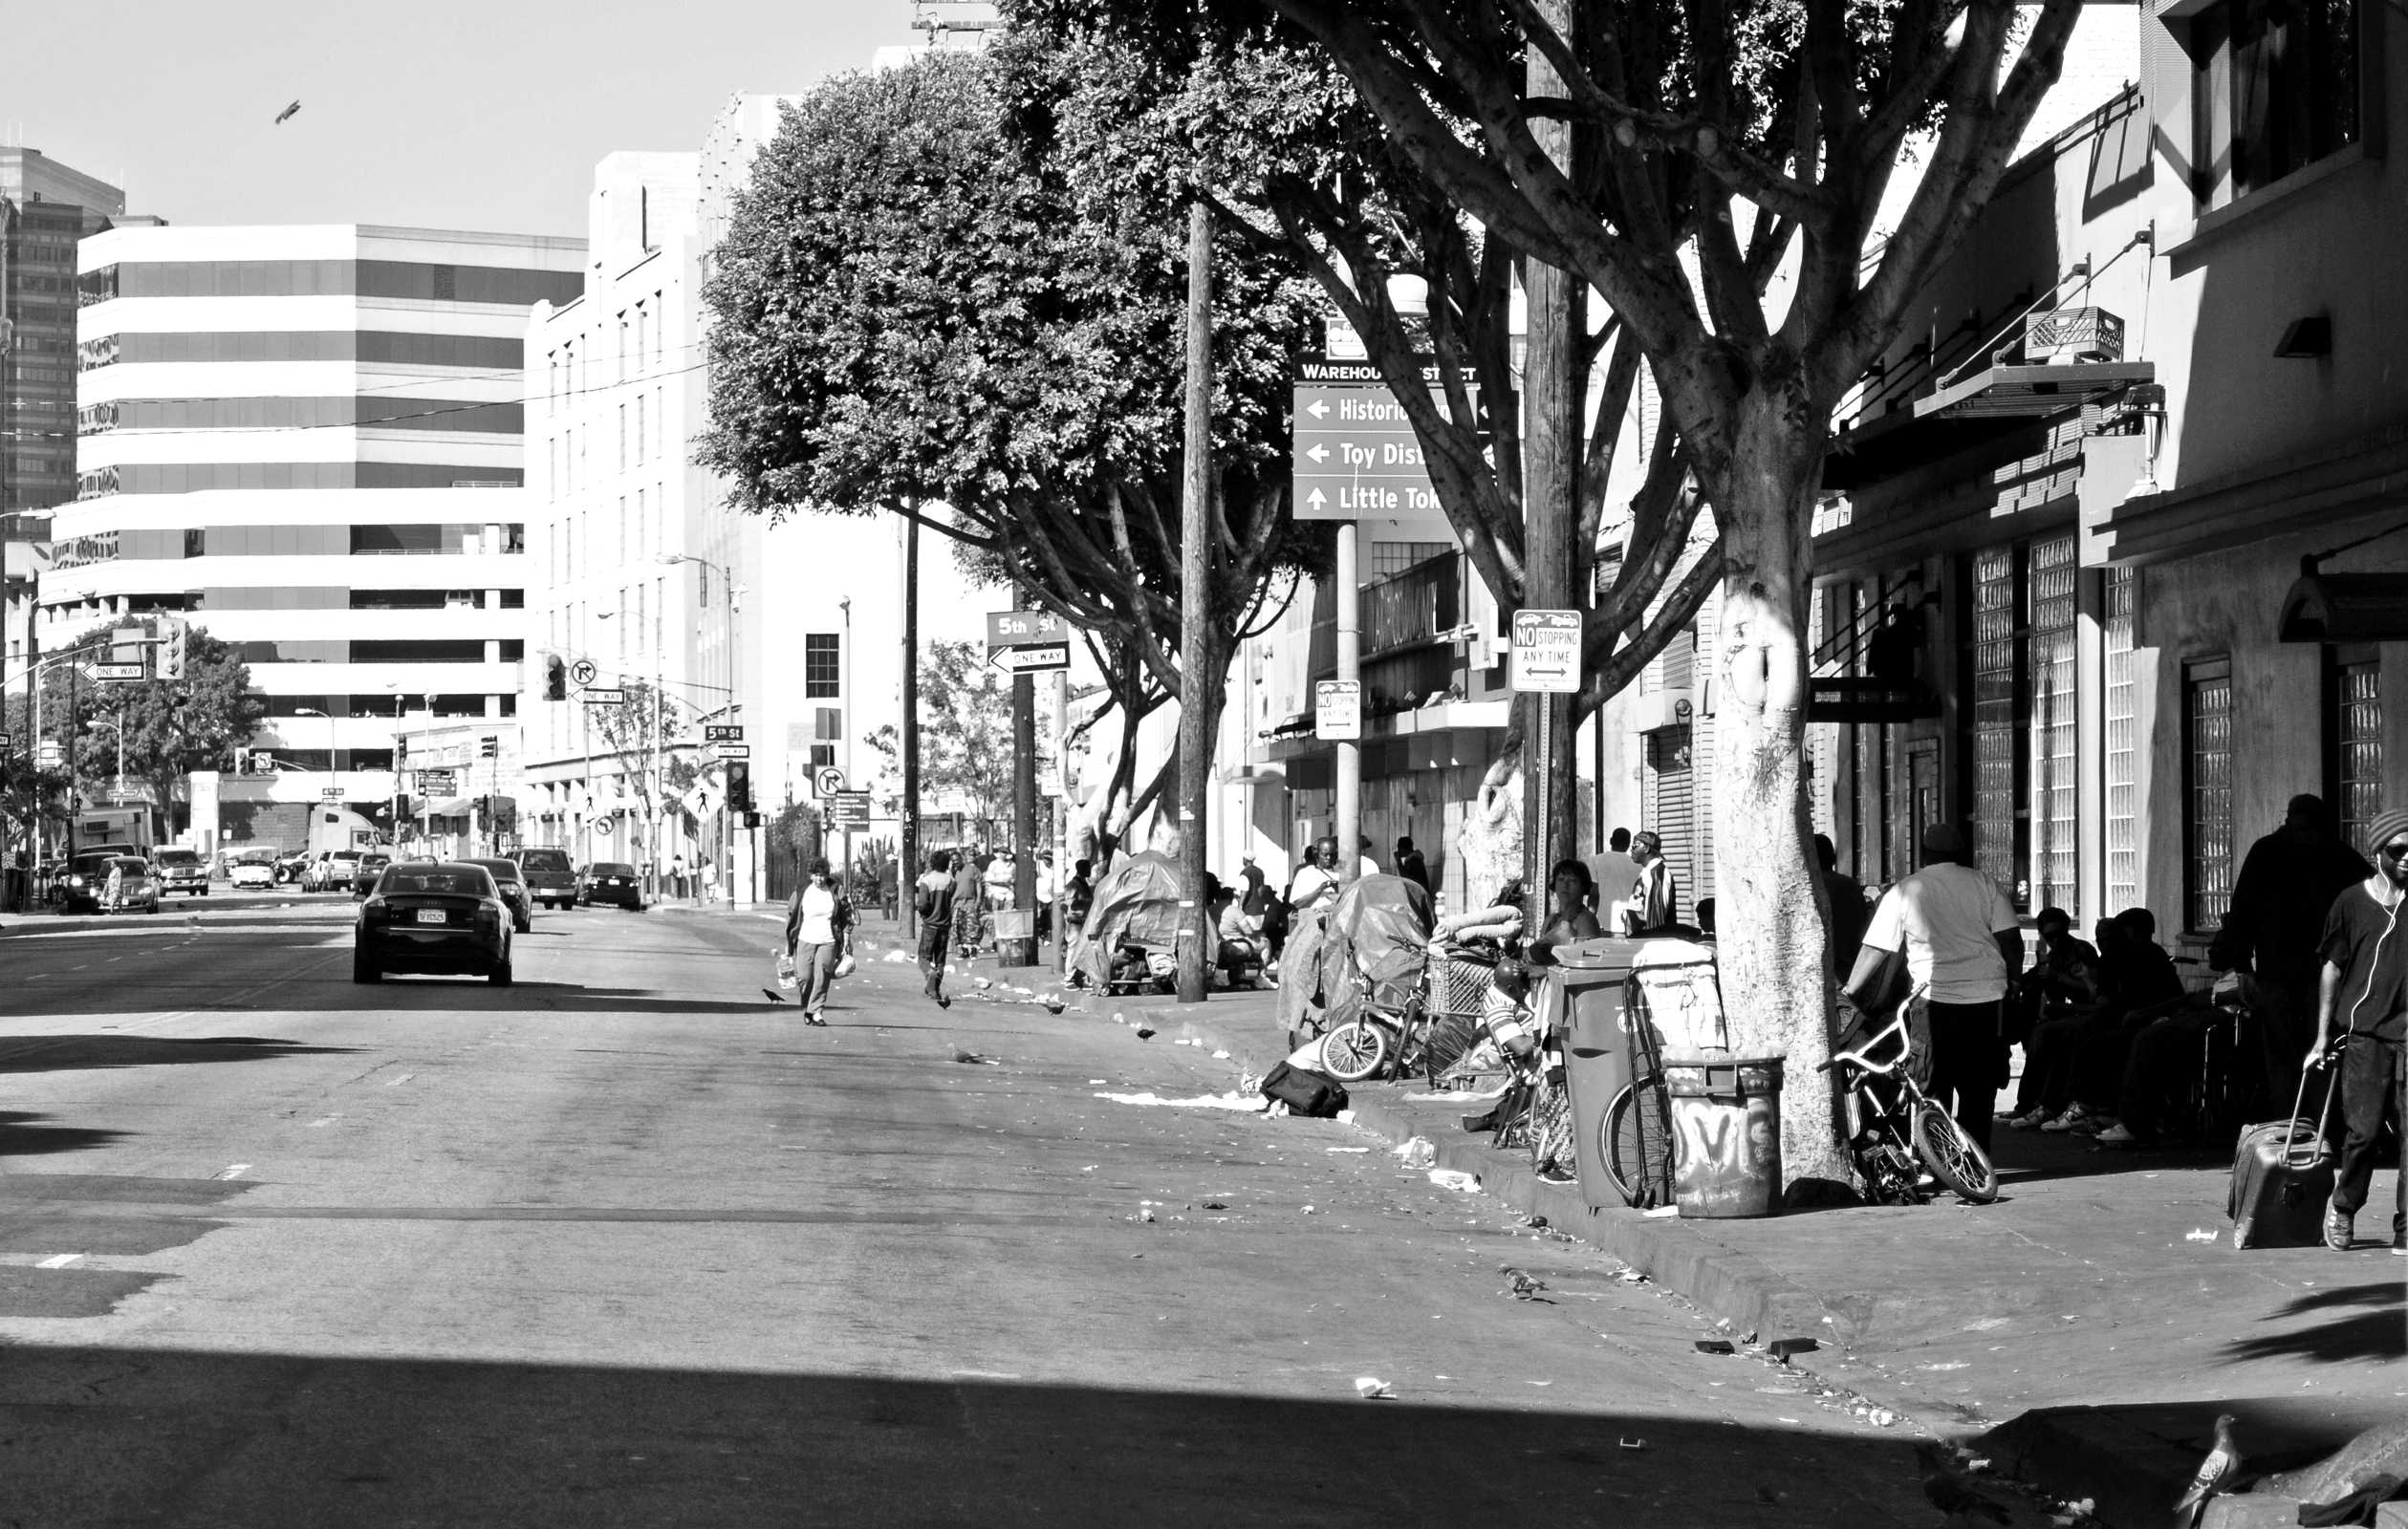 The stark contrast between the affluent businessmen and those living in poverty in Los Angeles can be seen literally across the street from each other. Photo credit: David J. Hawkins/Photo Editor